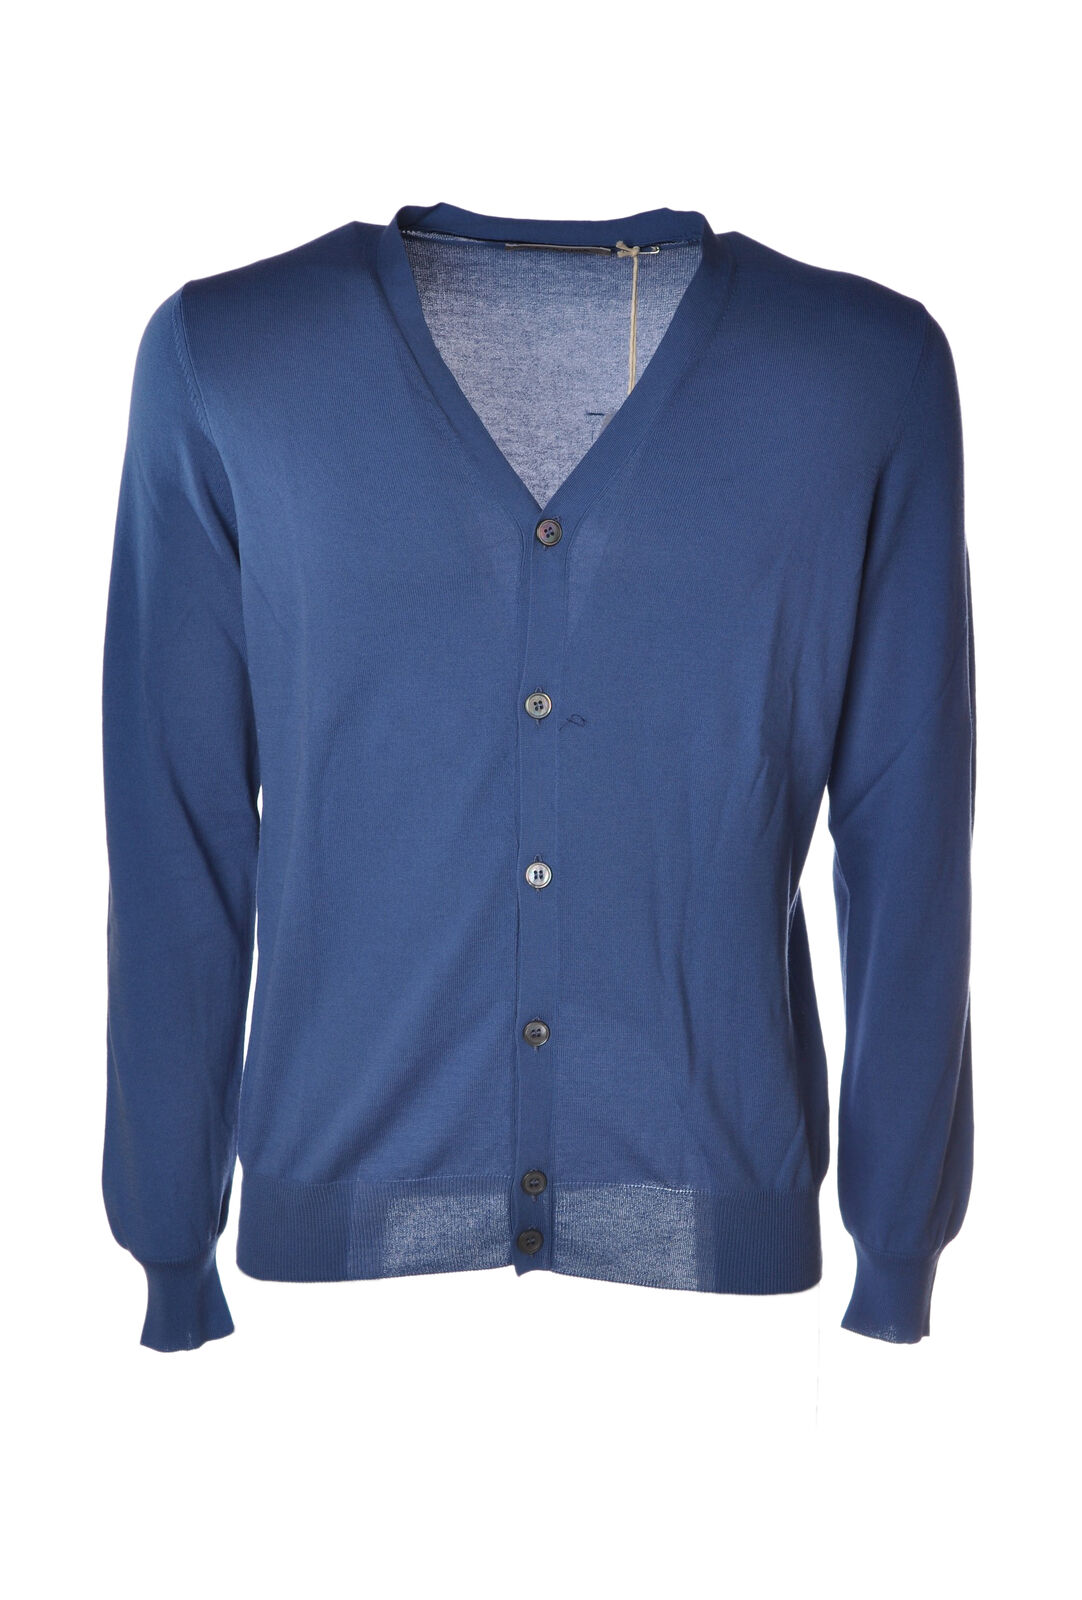 LA FILERIA - Knitwear-Cardigan - Man - Blau - 5008020F184714